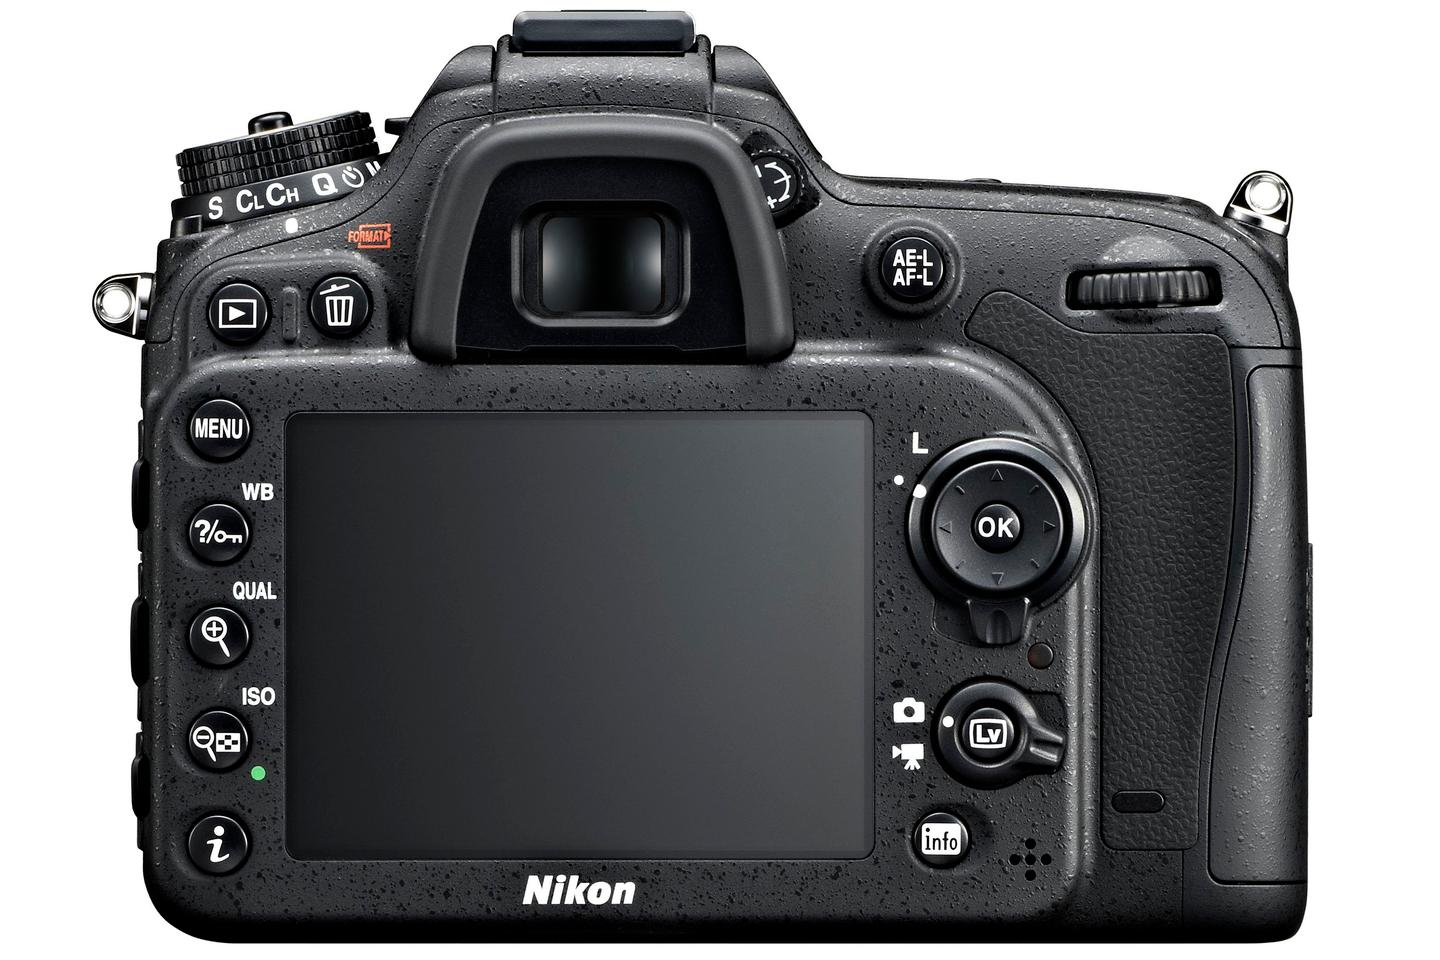 There's a 3.2-inch LCD with 1,229k dots on the rear of the Nikon D71000